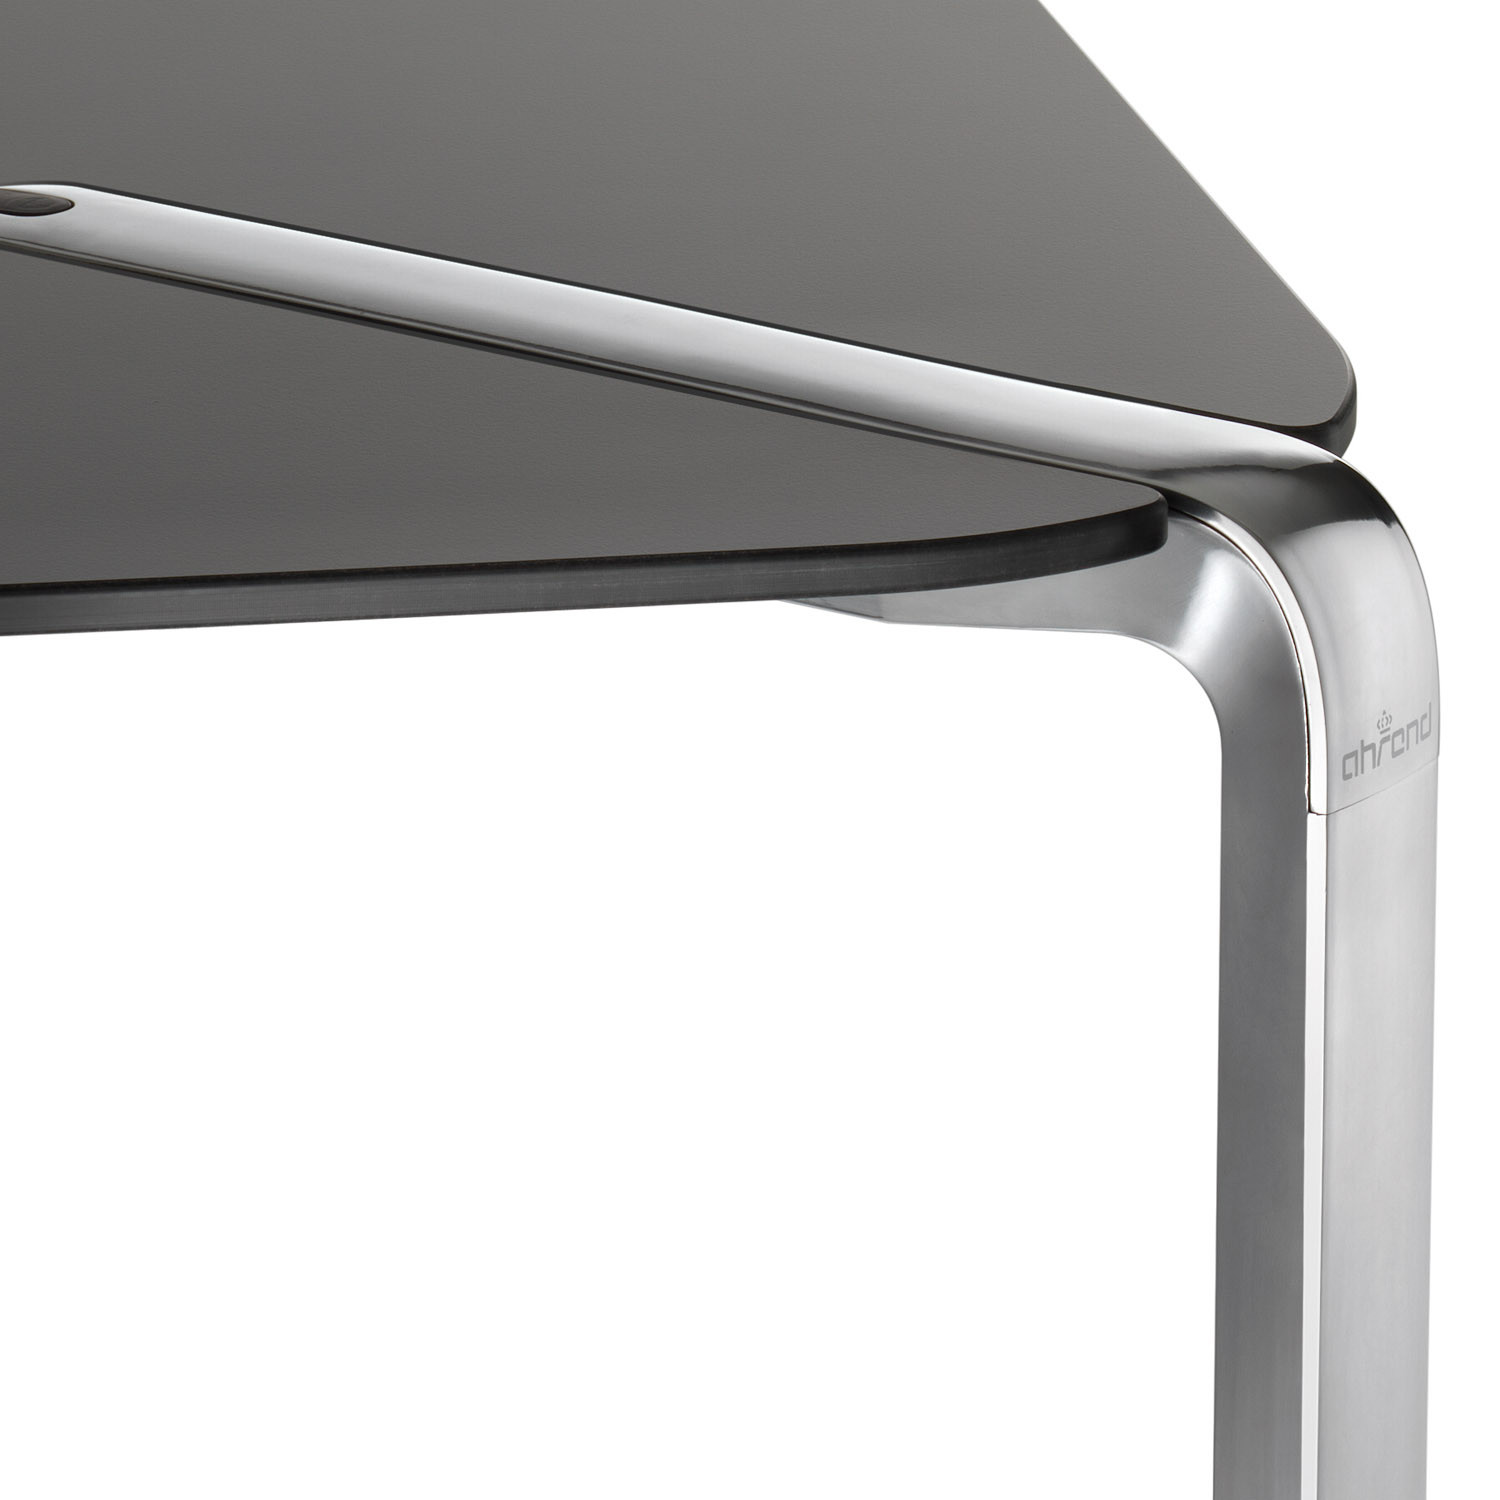 Ahrend 315 Table Detailled